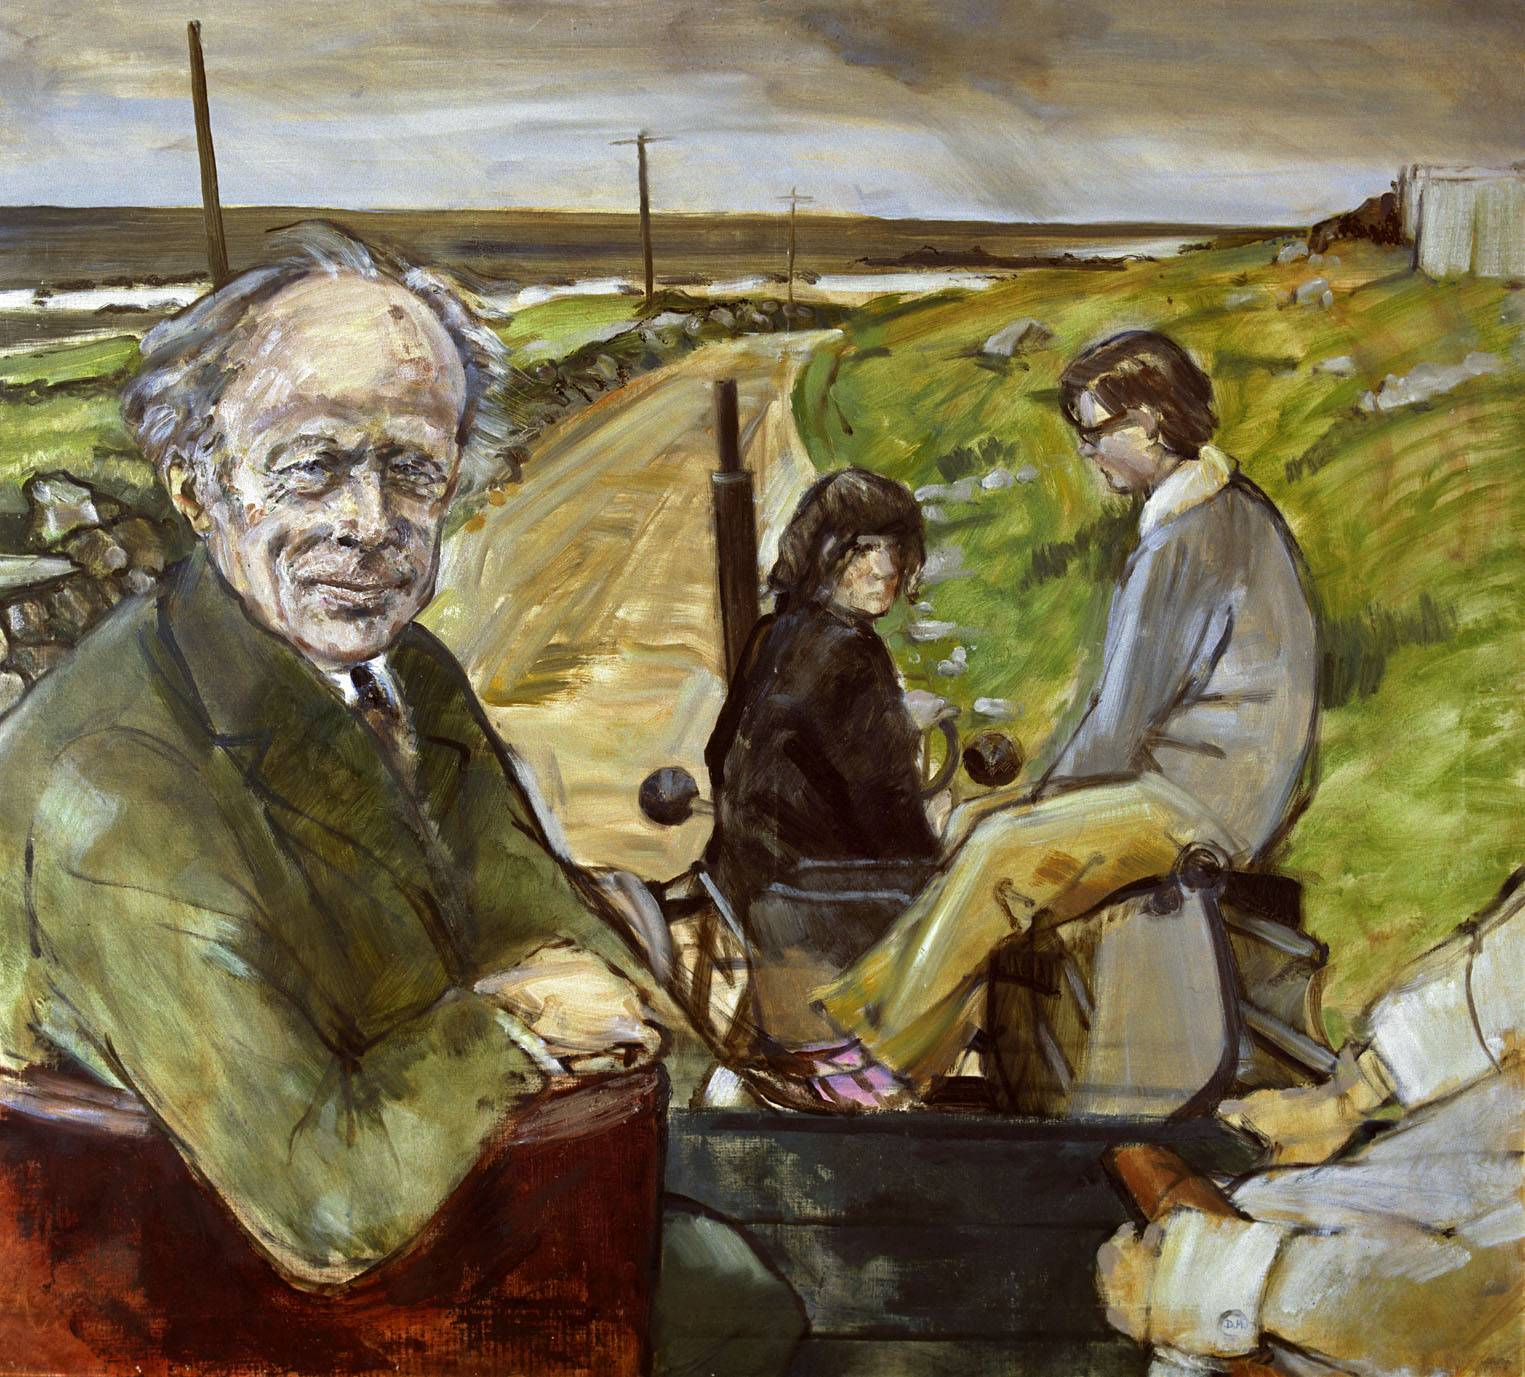 Erskine Childers, President of Ireland, by Derek Hill, 1974. The National Museum. Oil on canvas. Erskine and Rita Childers stayed at St Columb's from where they visited Tory Island, touring it on the only mechanised form of trnasport: a tractor. Hill finished this picture, showing him visiting the local people he loved, after the president's death. Derek Hill Foundation.